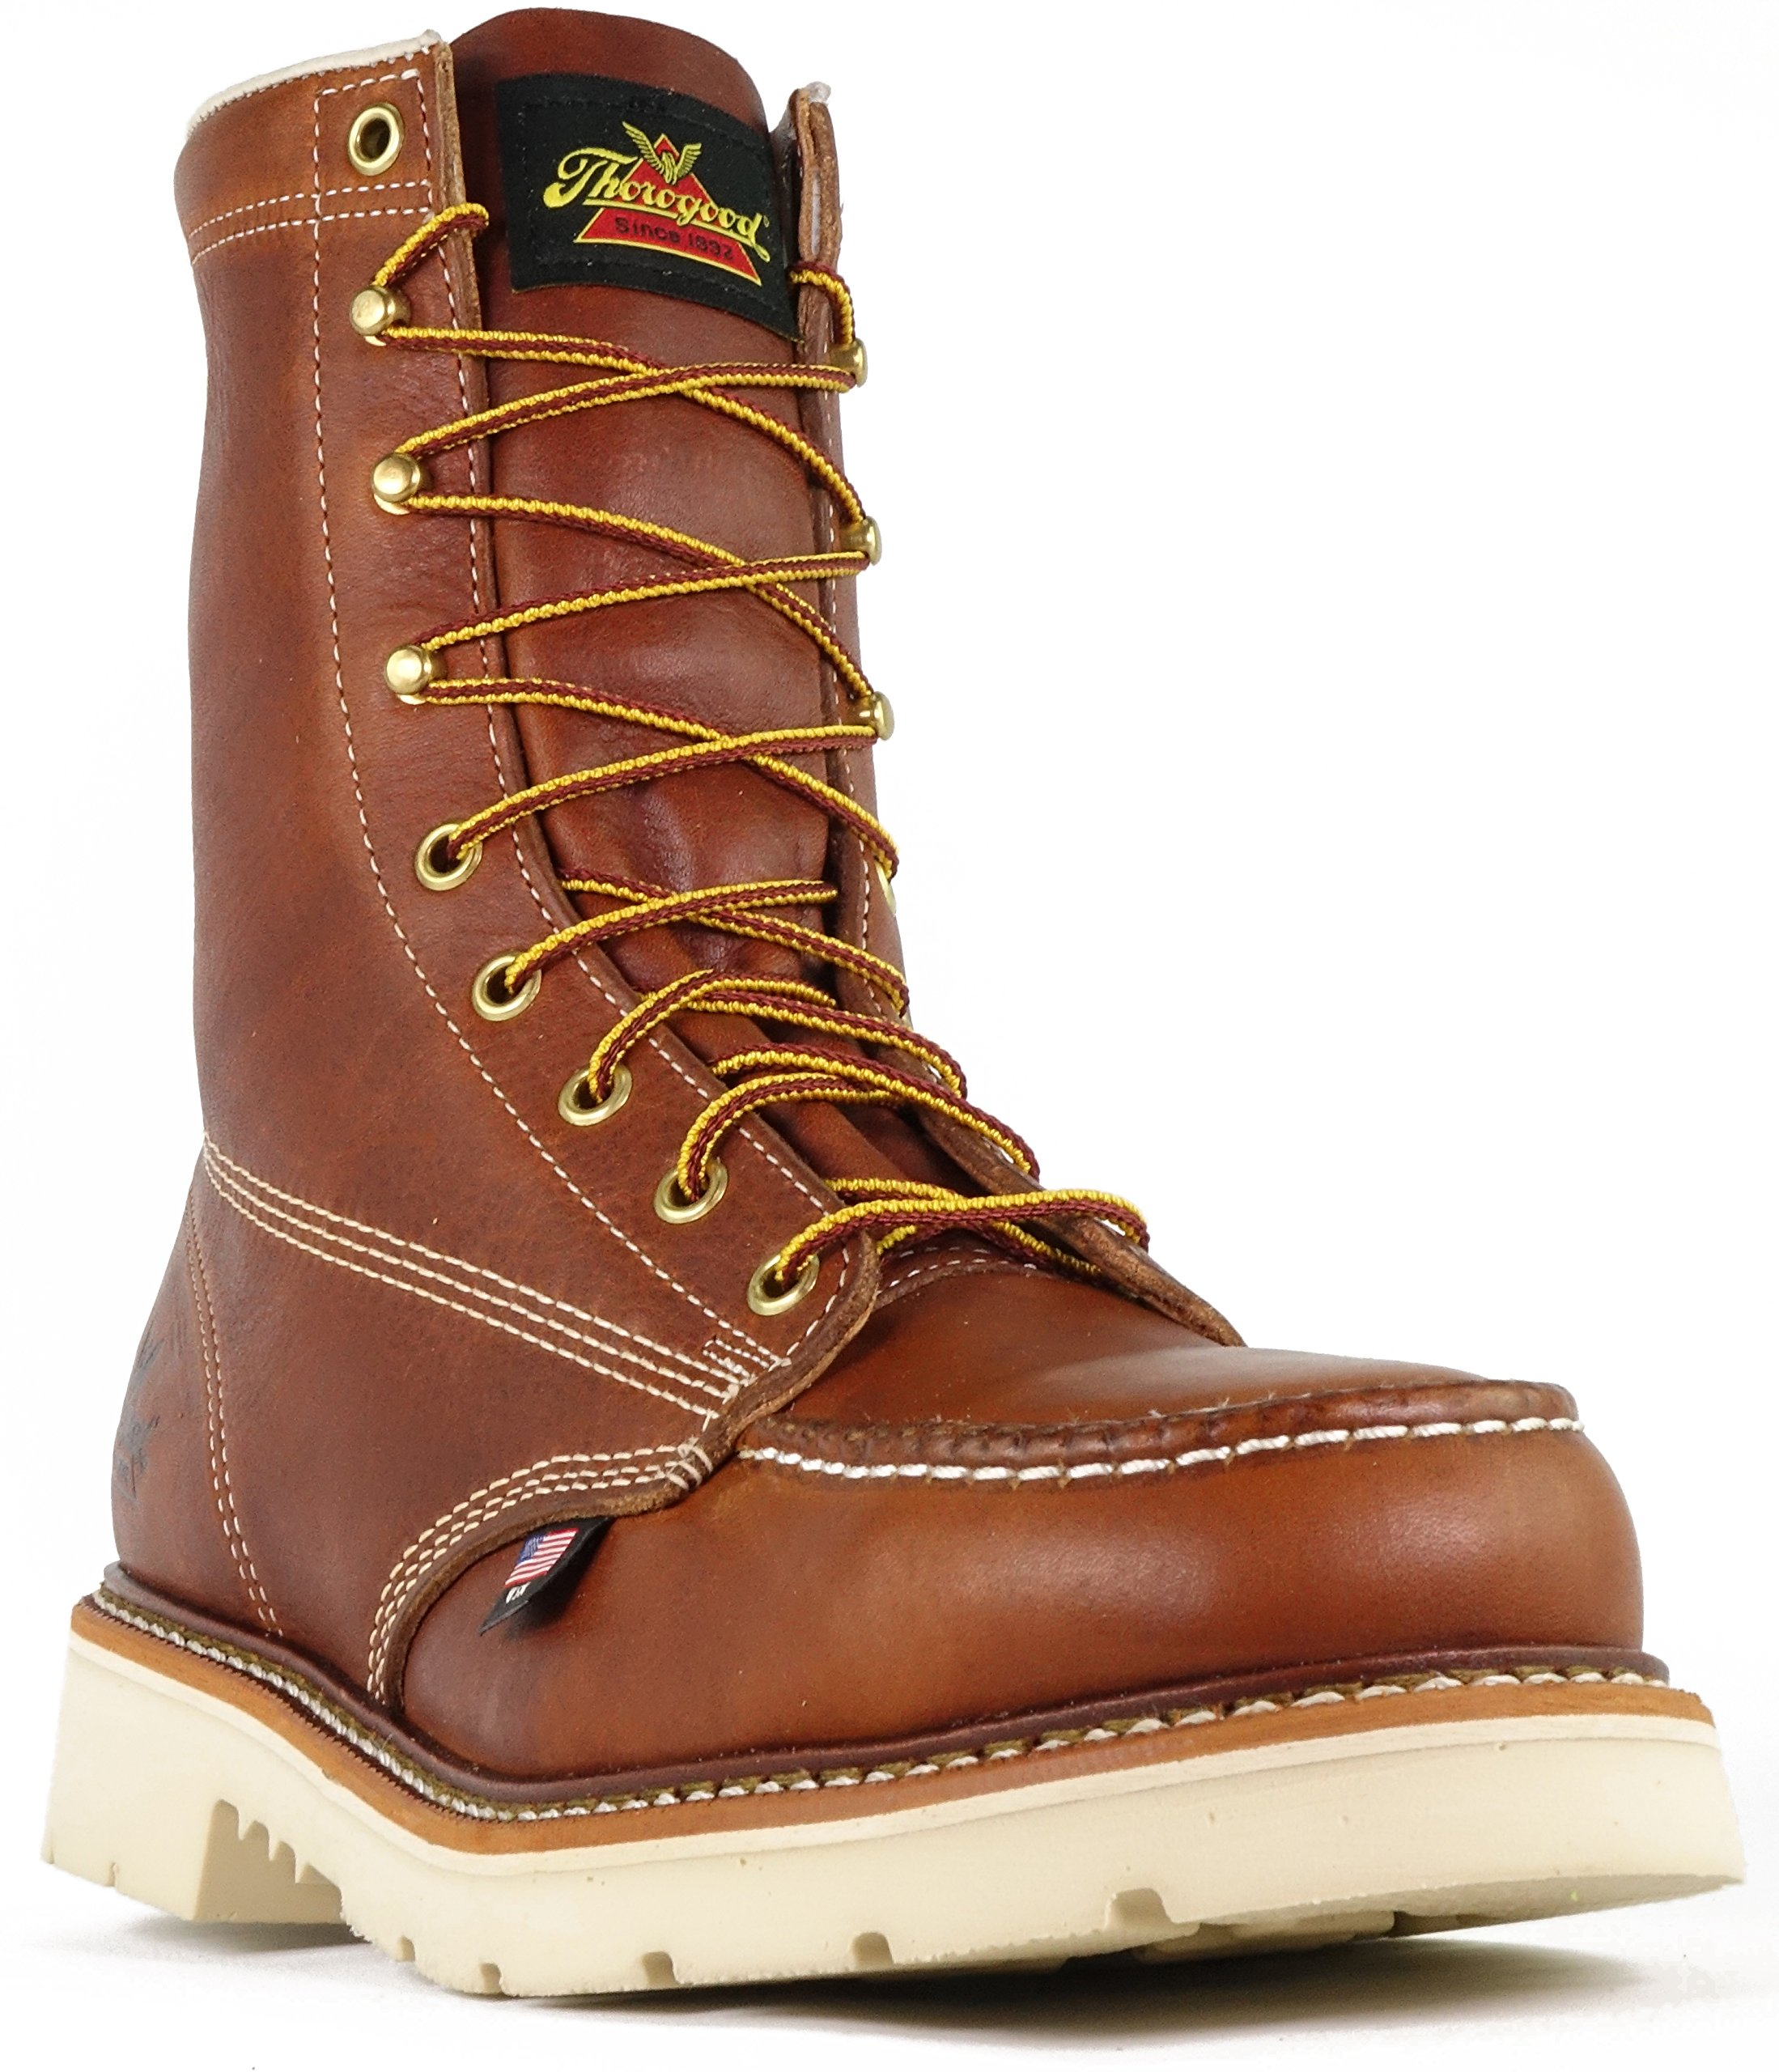 Thorogood 804-4308 Men's American Heritage 8'' Moc Toe, MAXwear 90 Safety Toe Boot, Tobacco Oil-Tanned - 8 D(M) US